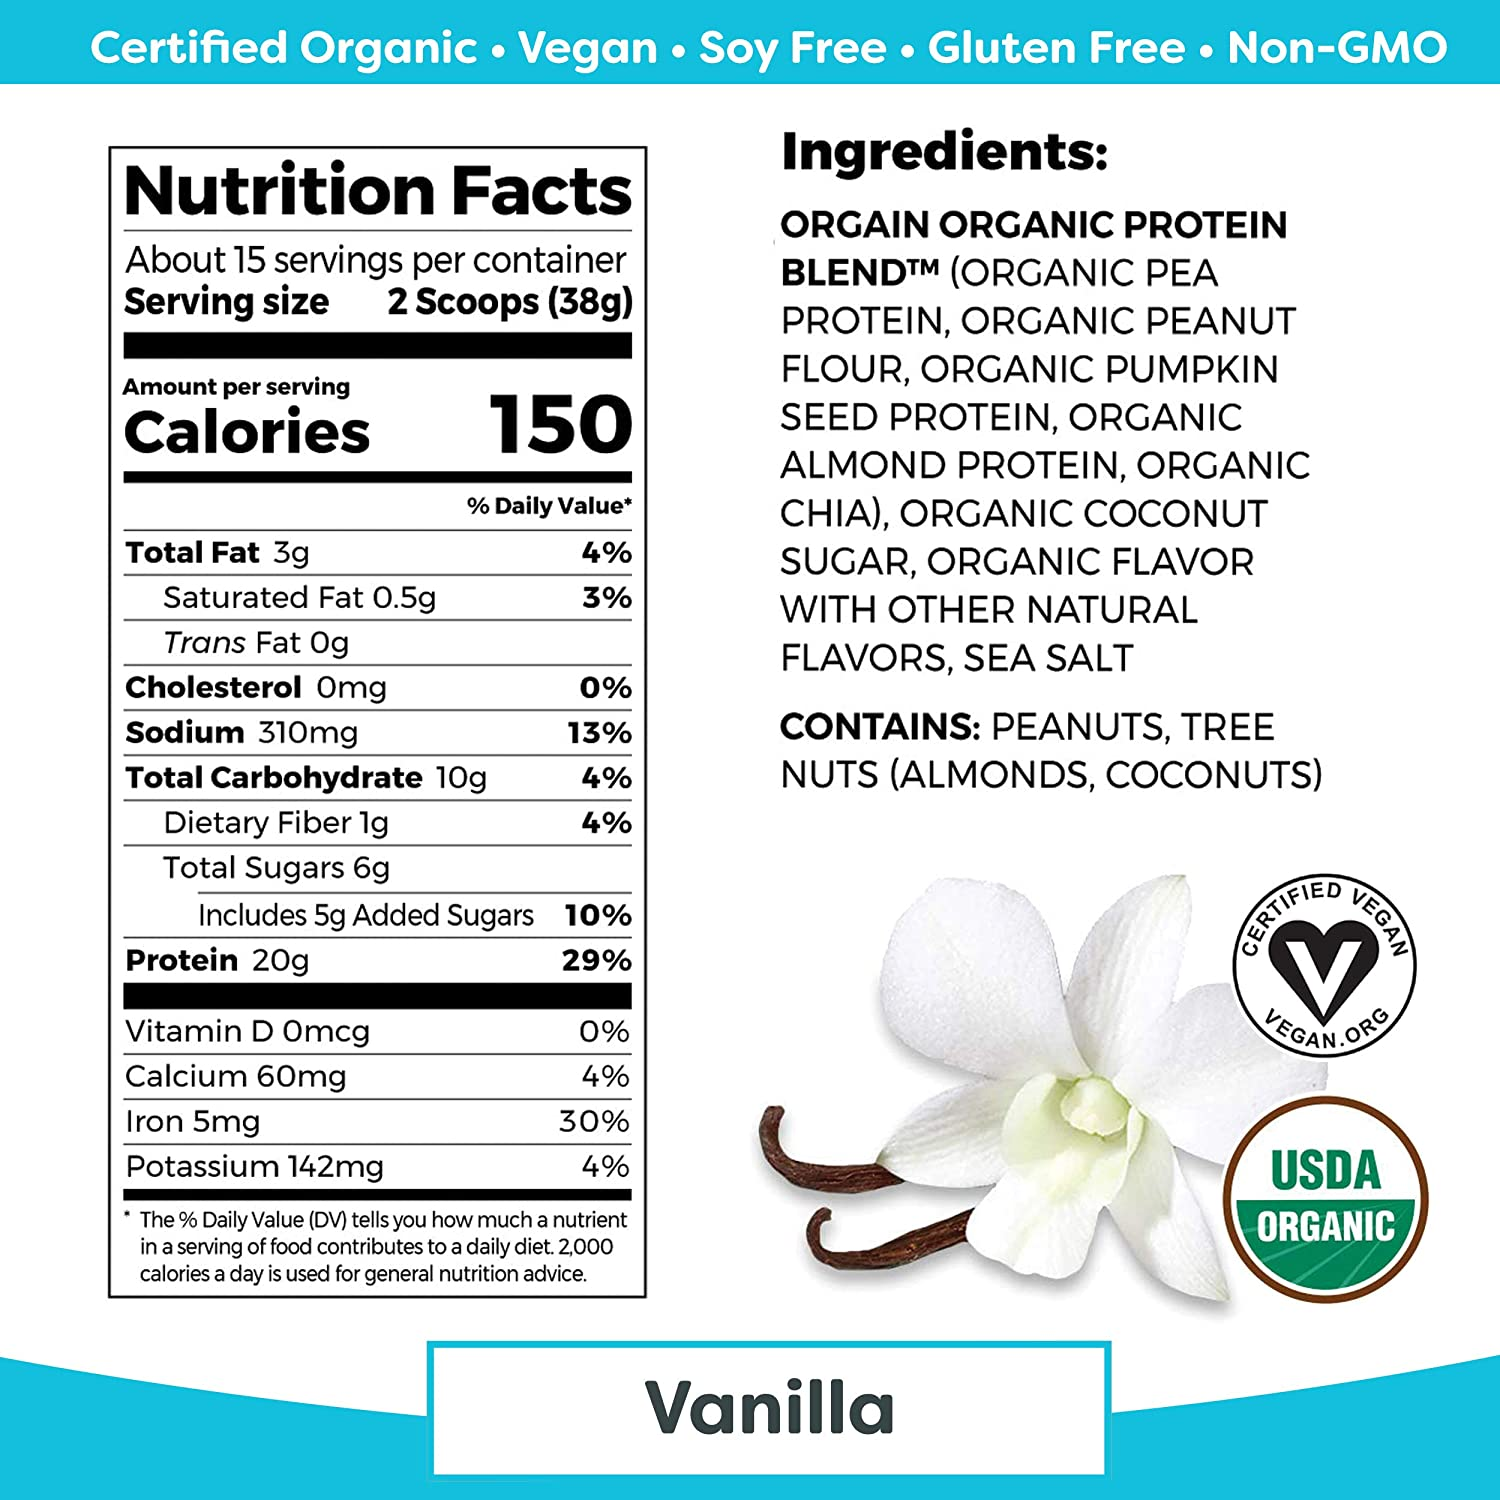 Orgain Simple Organic Plant Protein Powder, Vanilla - 20g Protein, Vegan, Dairy and Gluten Free, Stevia Free, Made with Fewer Ingredients, Kosher, Non-GMO, 1.25 Pound: Grocery & Gourmet Food